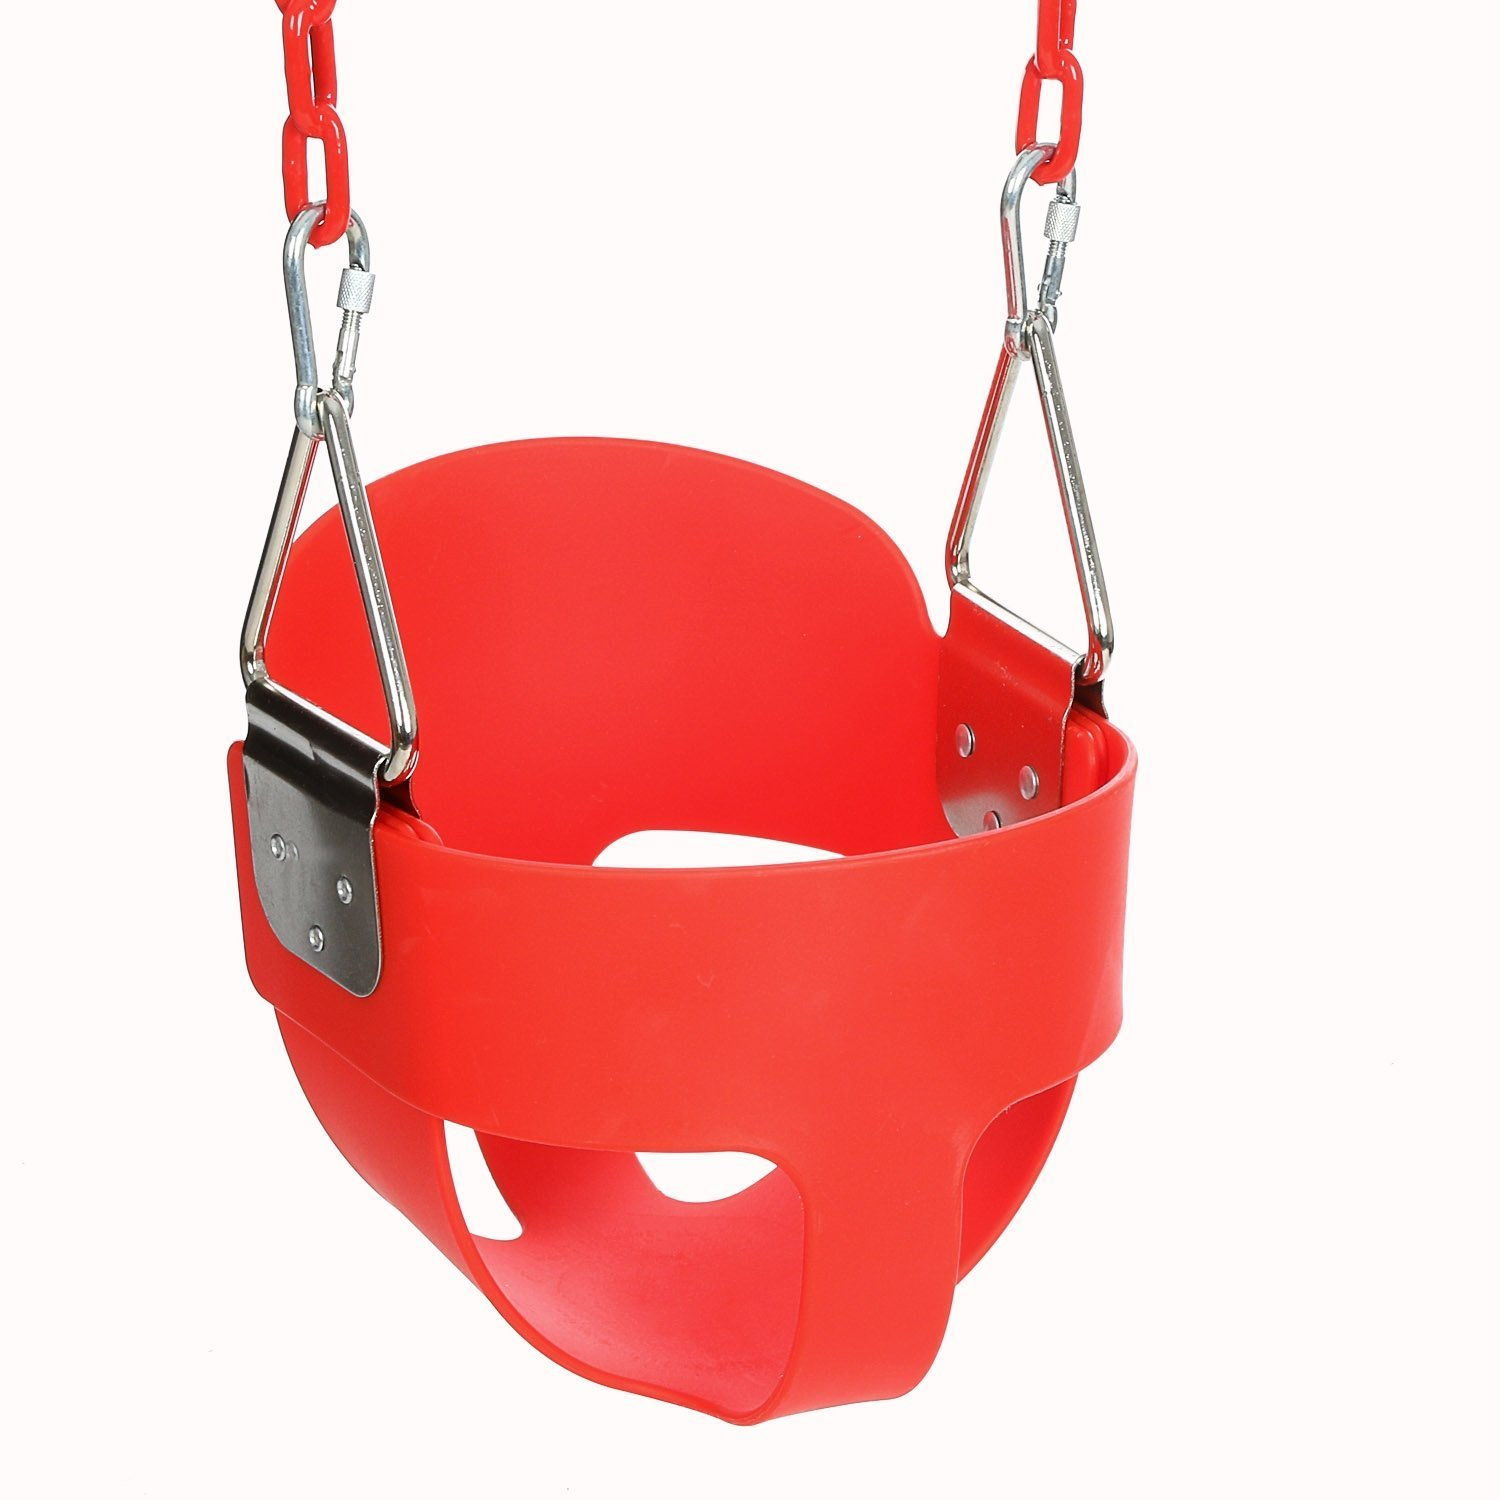 Fashine Bucket Swing Seat Outdoor Kids Child High Back Full with Coated Chain Home Garden